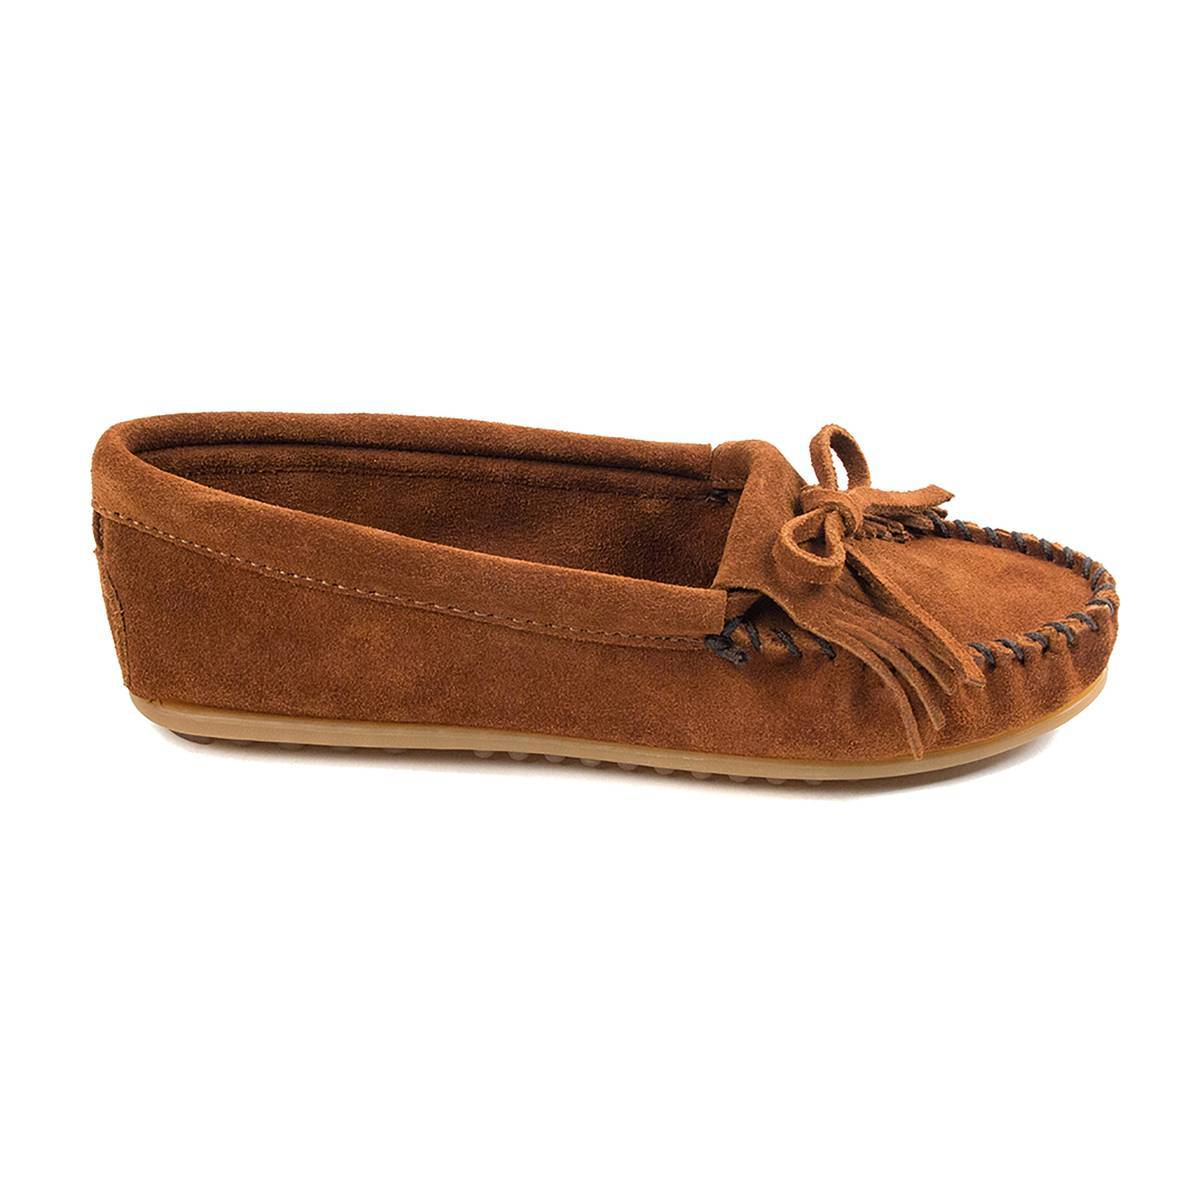 MINNETONKA Mocasines de piel DEKILTY marrón